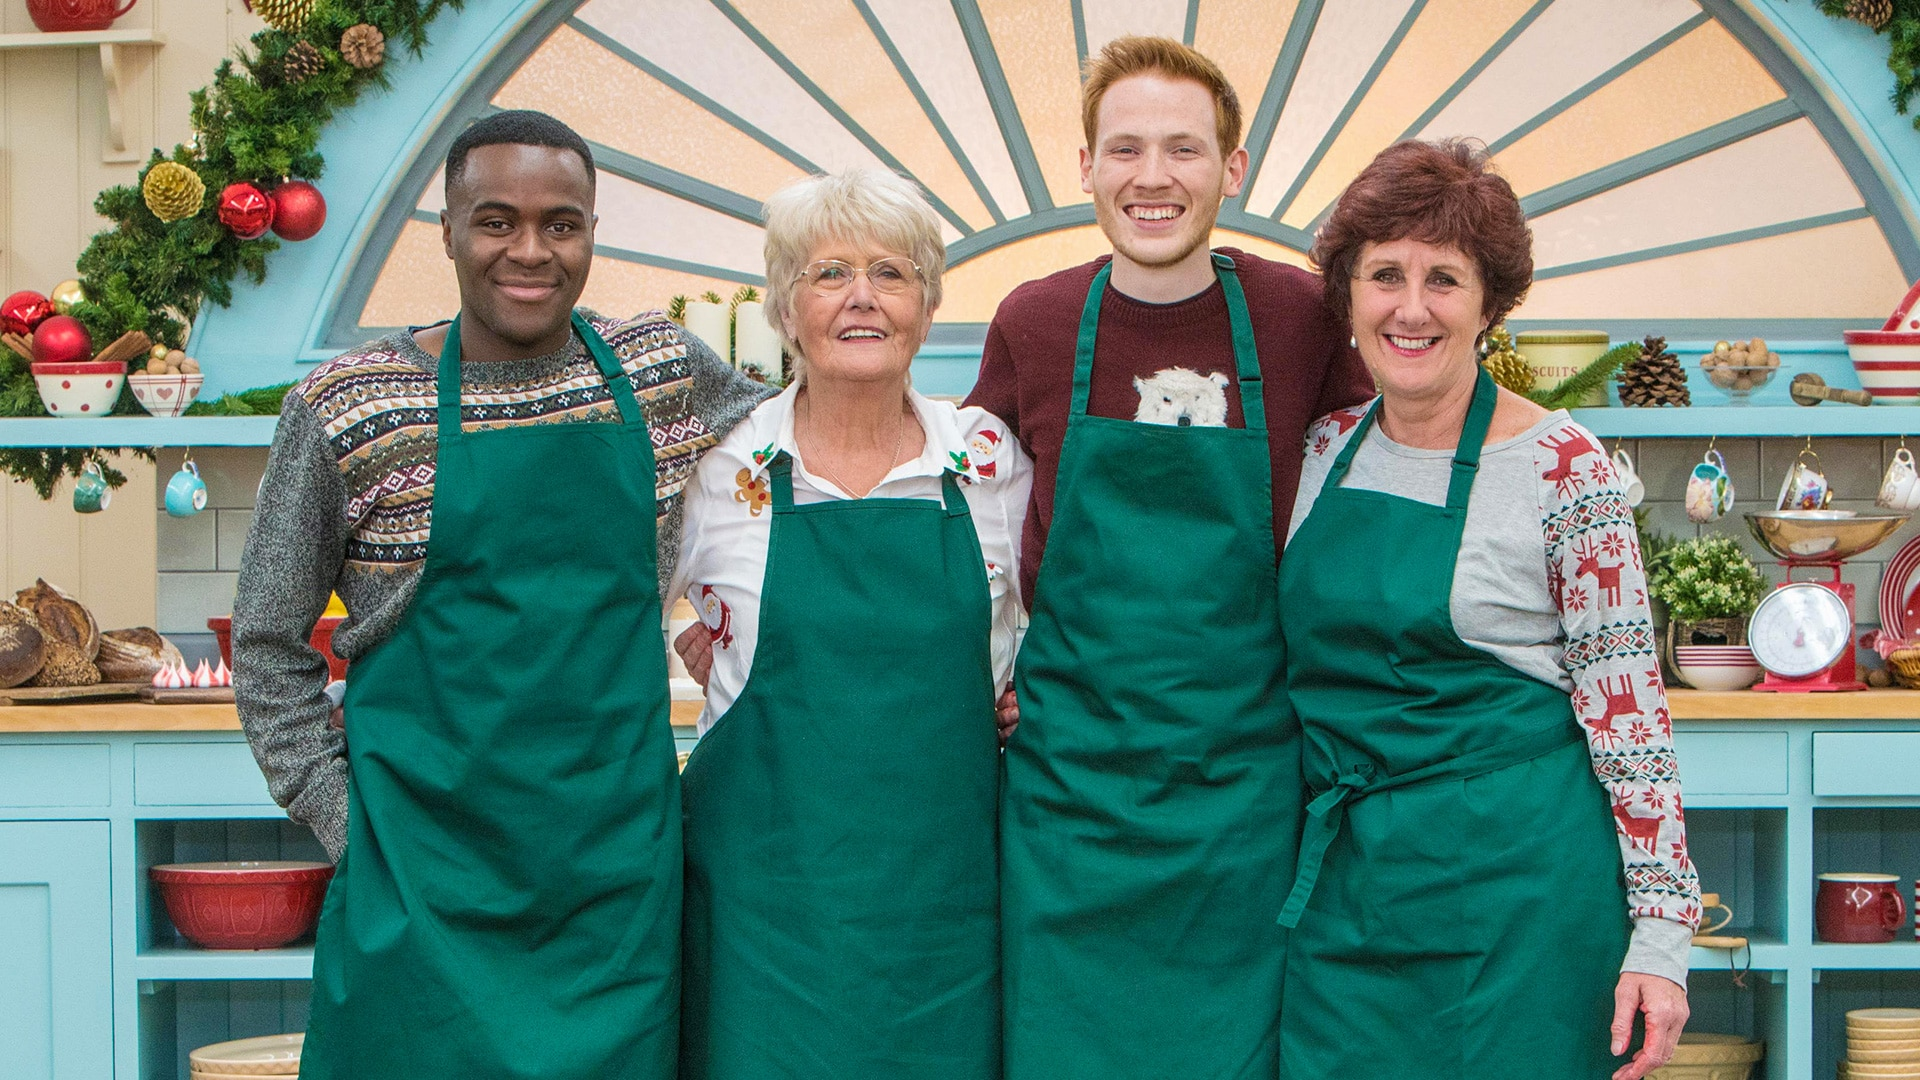 The Great British Bake Off: Festive Specials - All 4